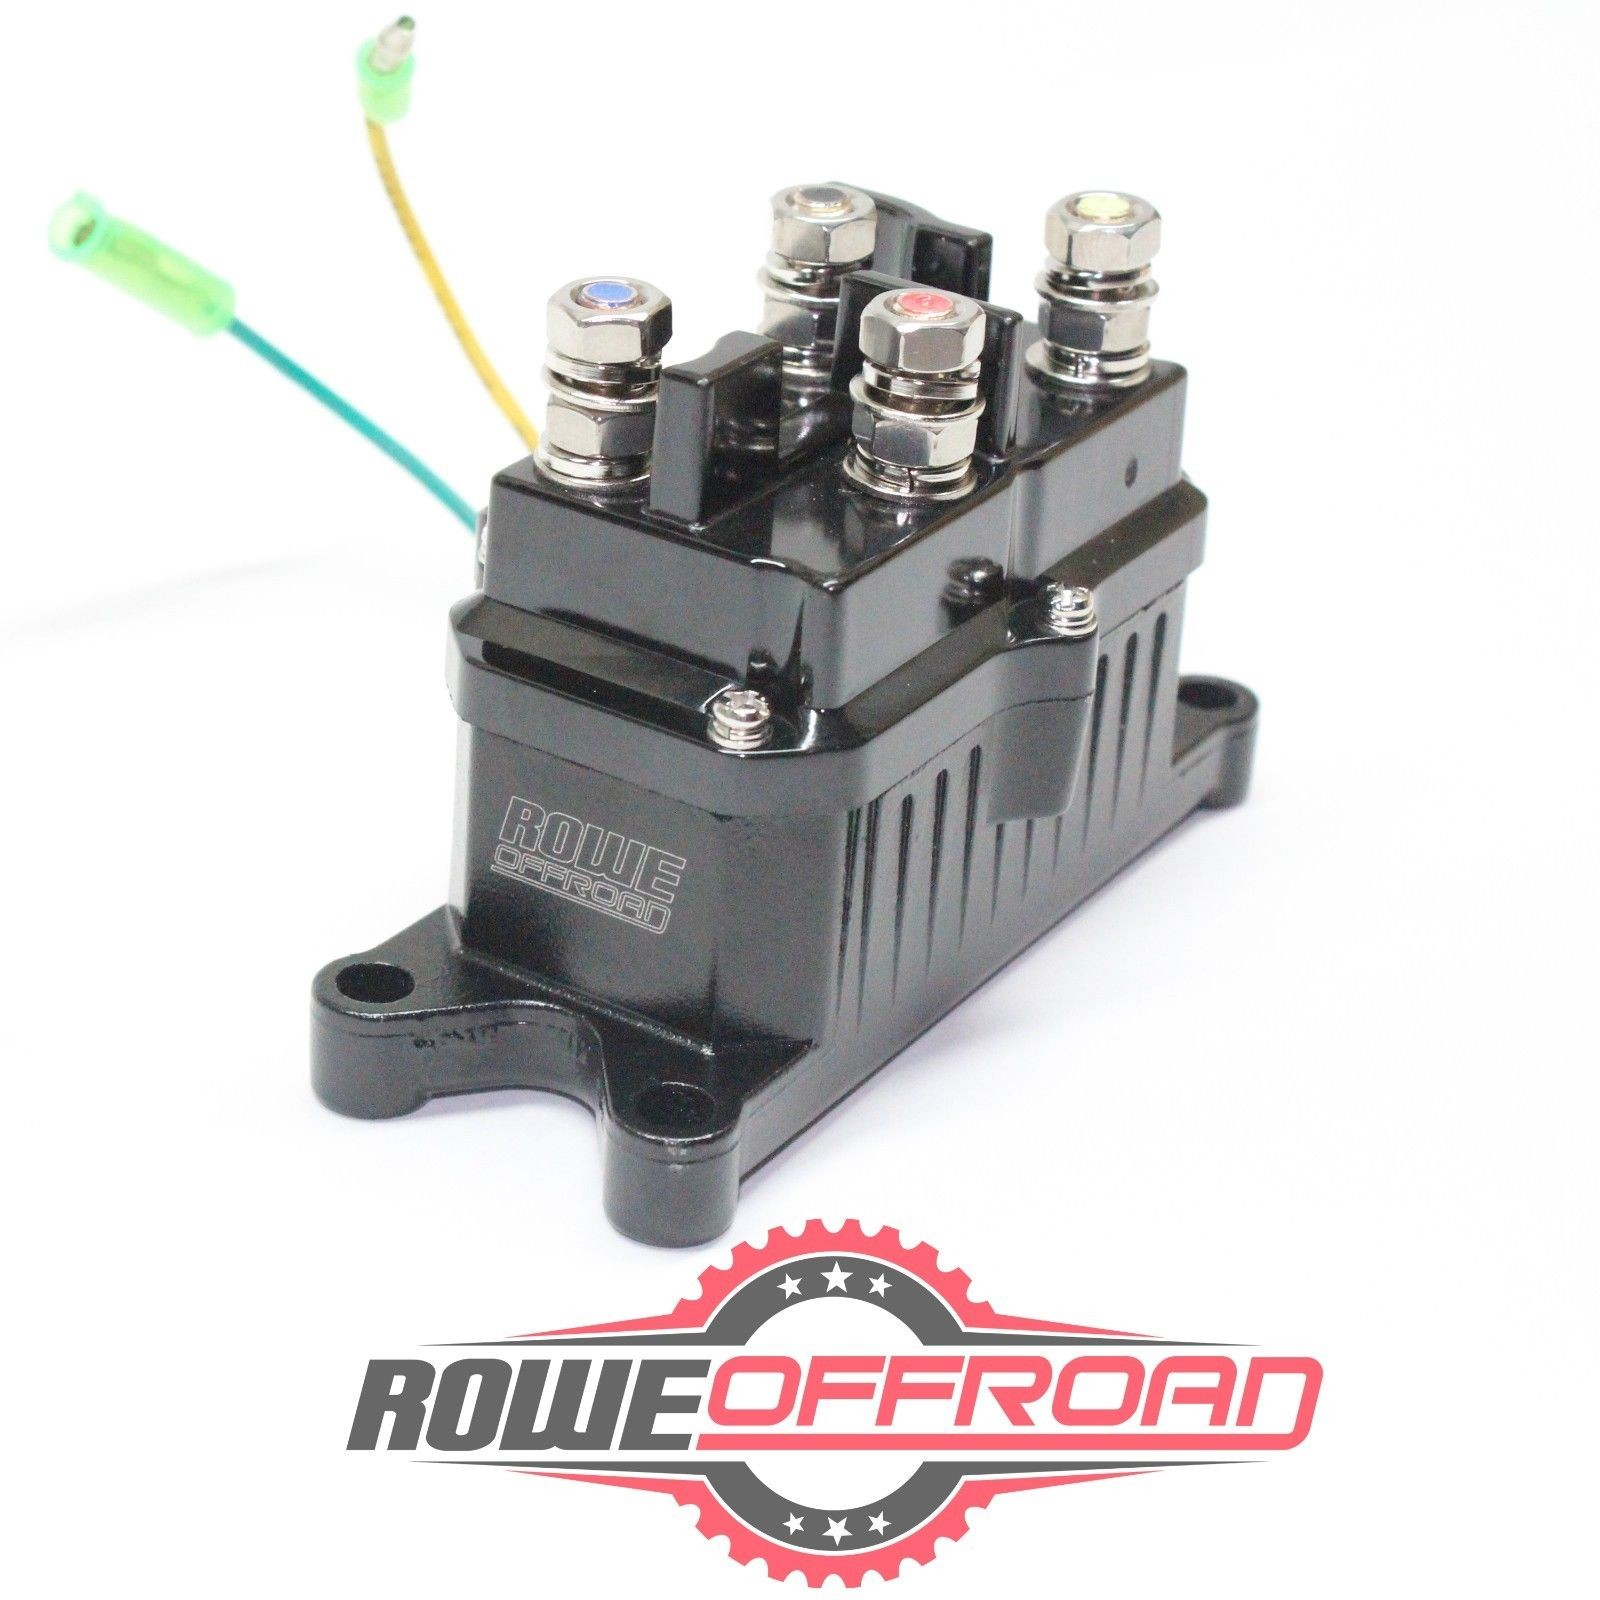 Winch contactor wiring diagram viper 5902 wiring diagram winch contactor wiring diagram atv utv winch 12v solenoid relay contactor switch warn wiring of winch publicscrutiny Images